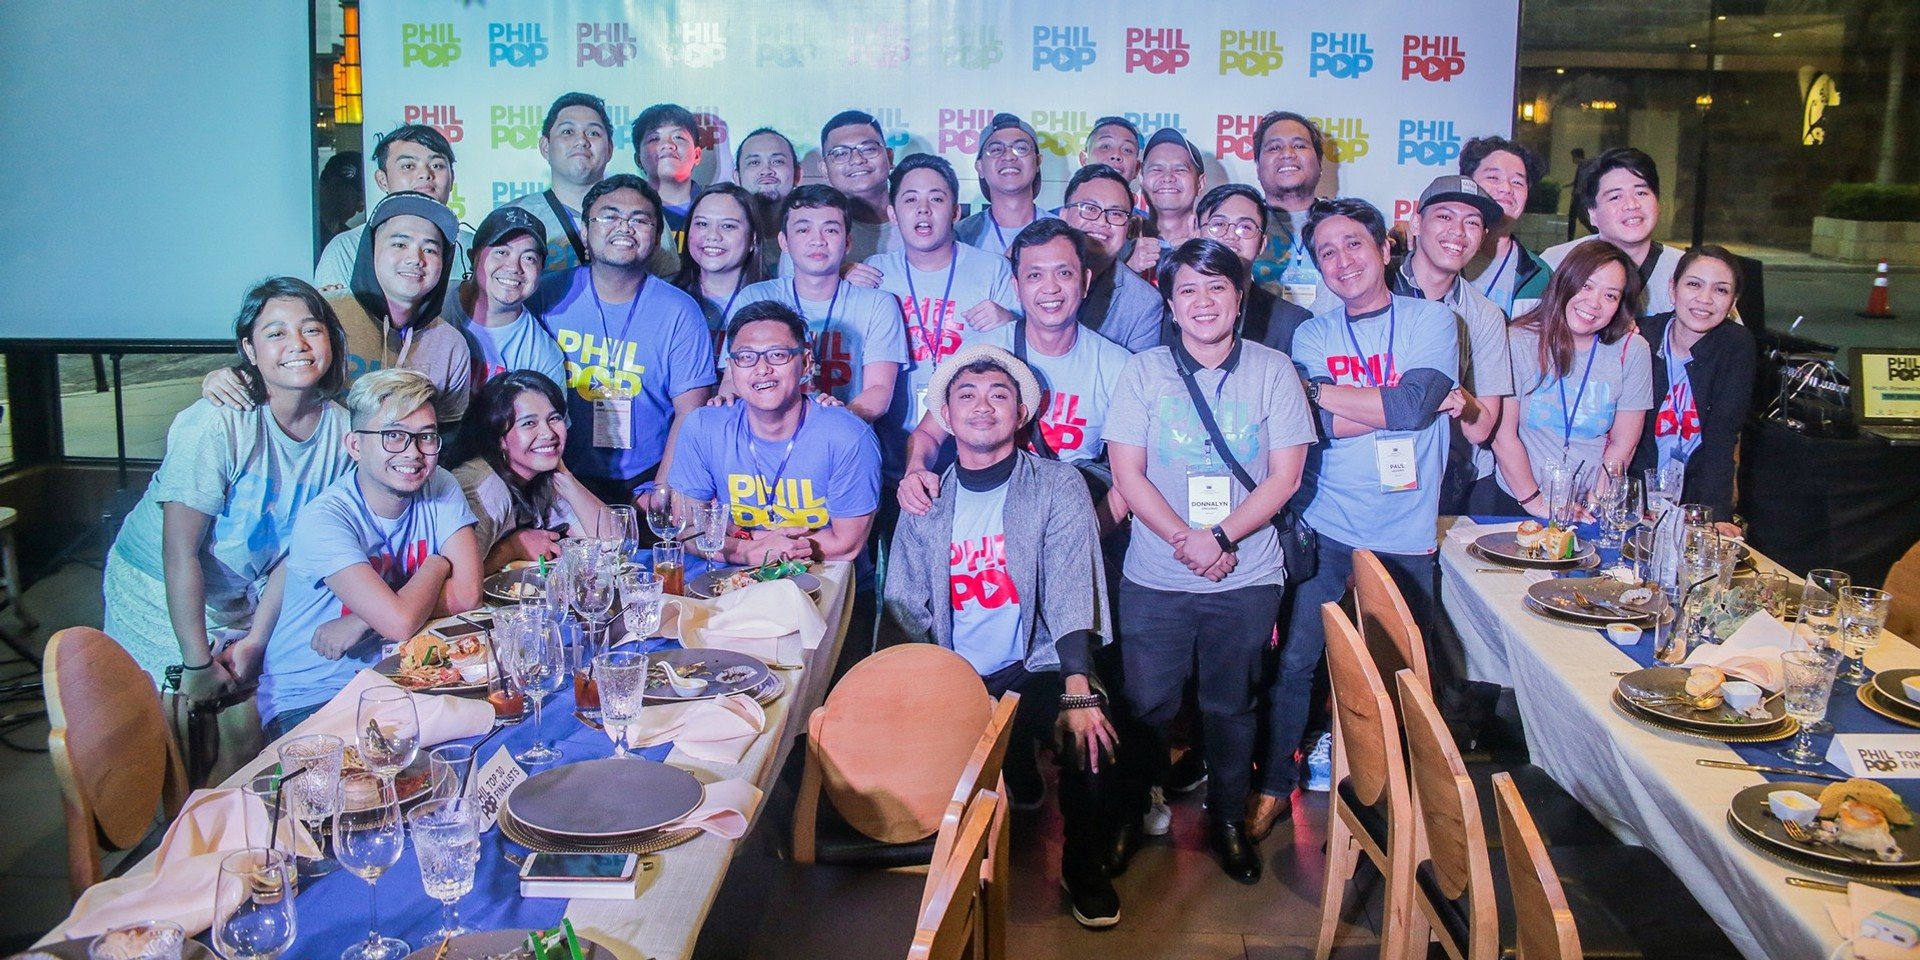 Here are the 30 semifinalists of PhilPop 2018